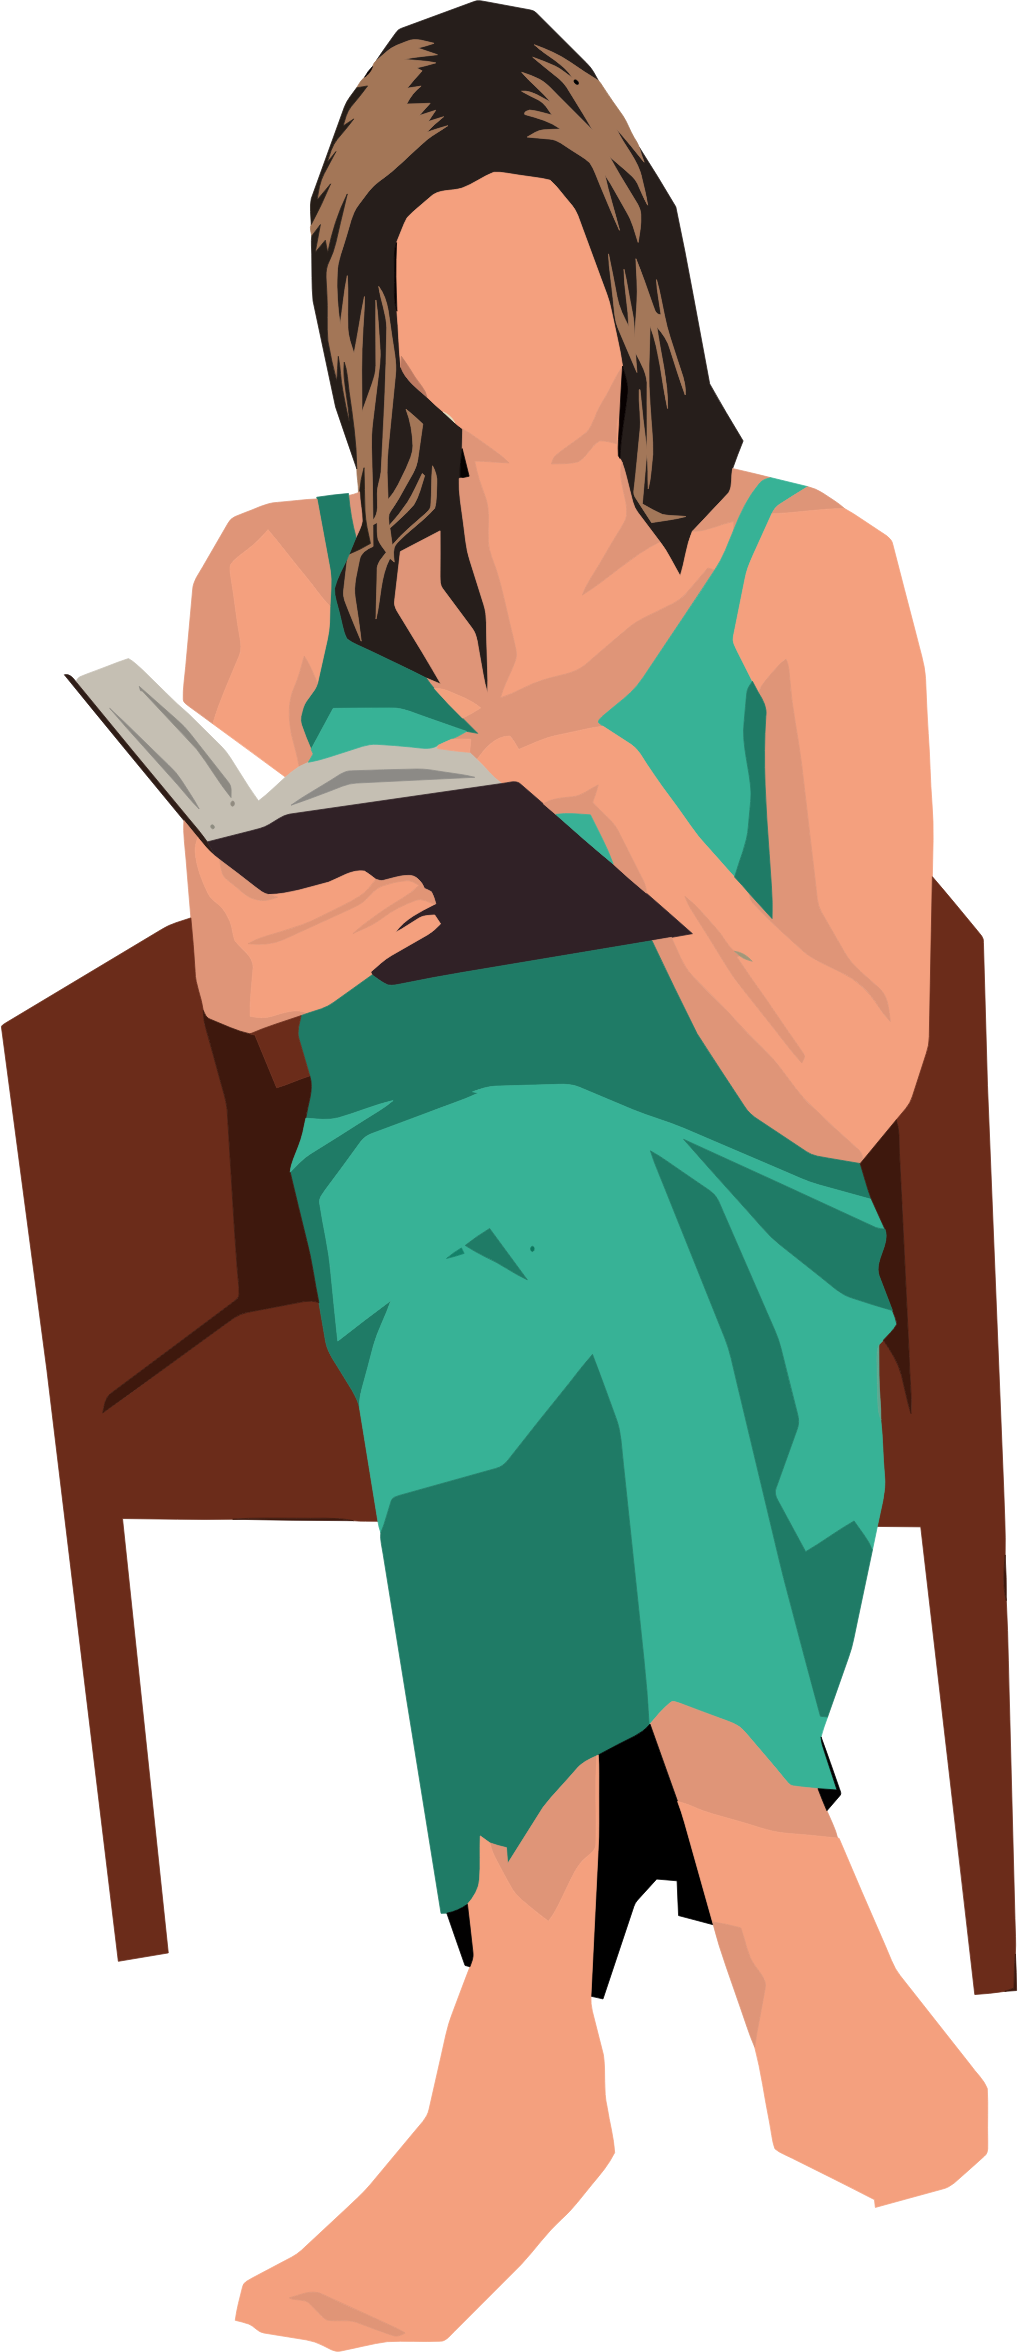 Woman sittnig in a chair with crown clipart royalty free library Clipart - Woman Sitting In Chair Reading royalty free library